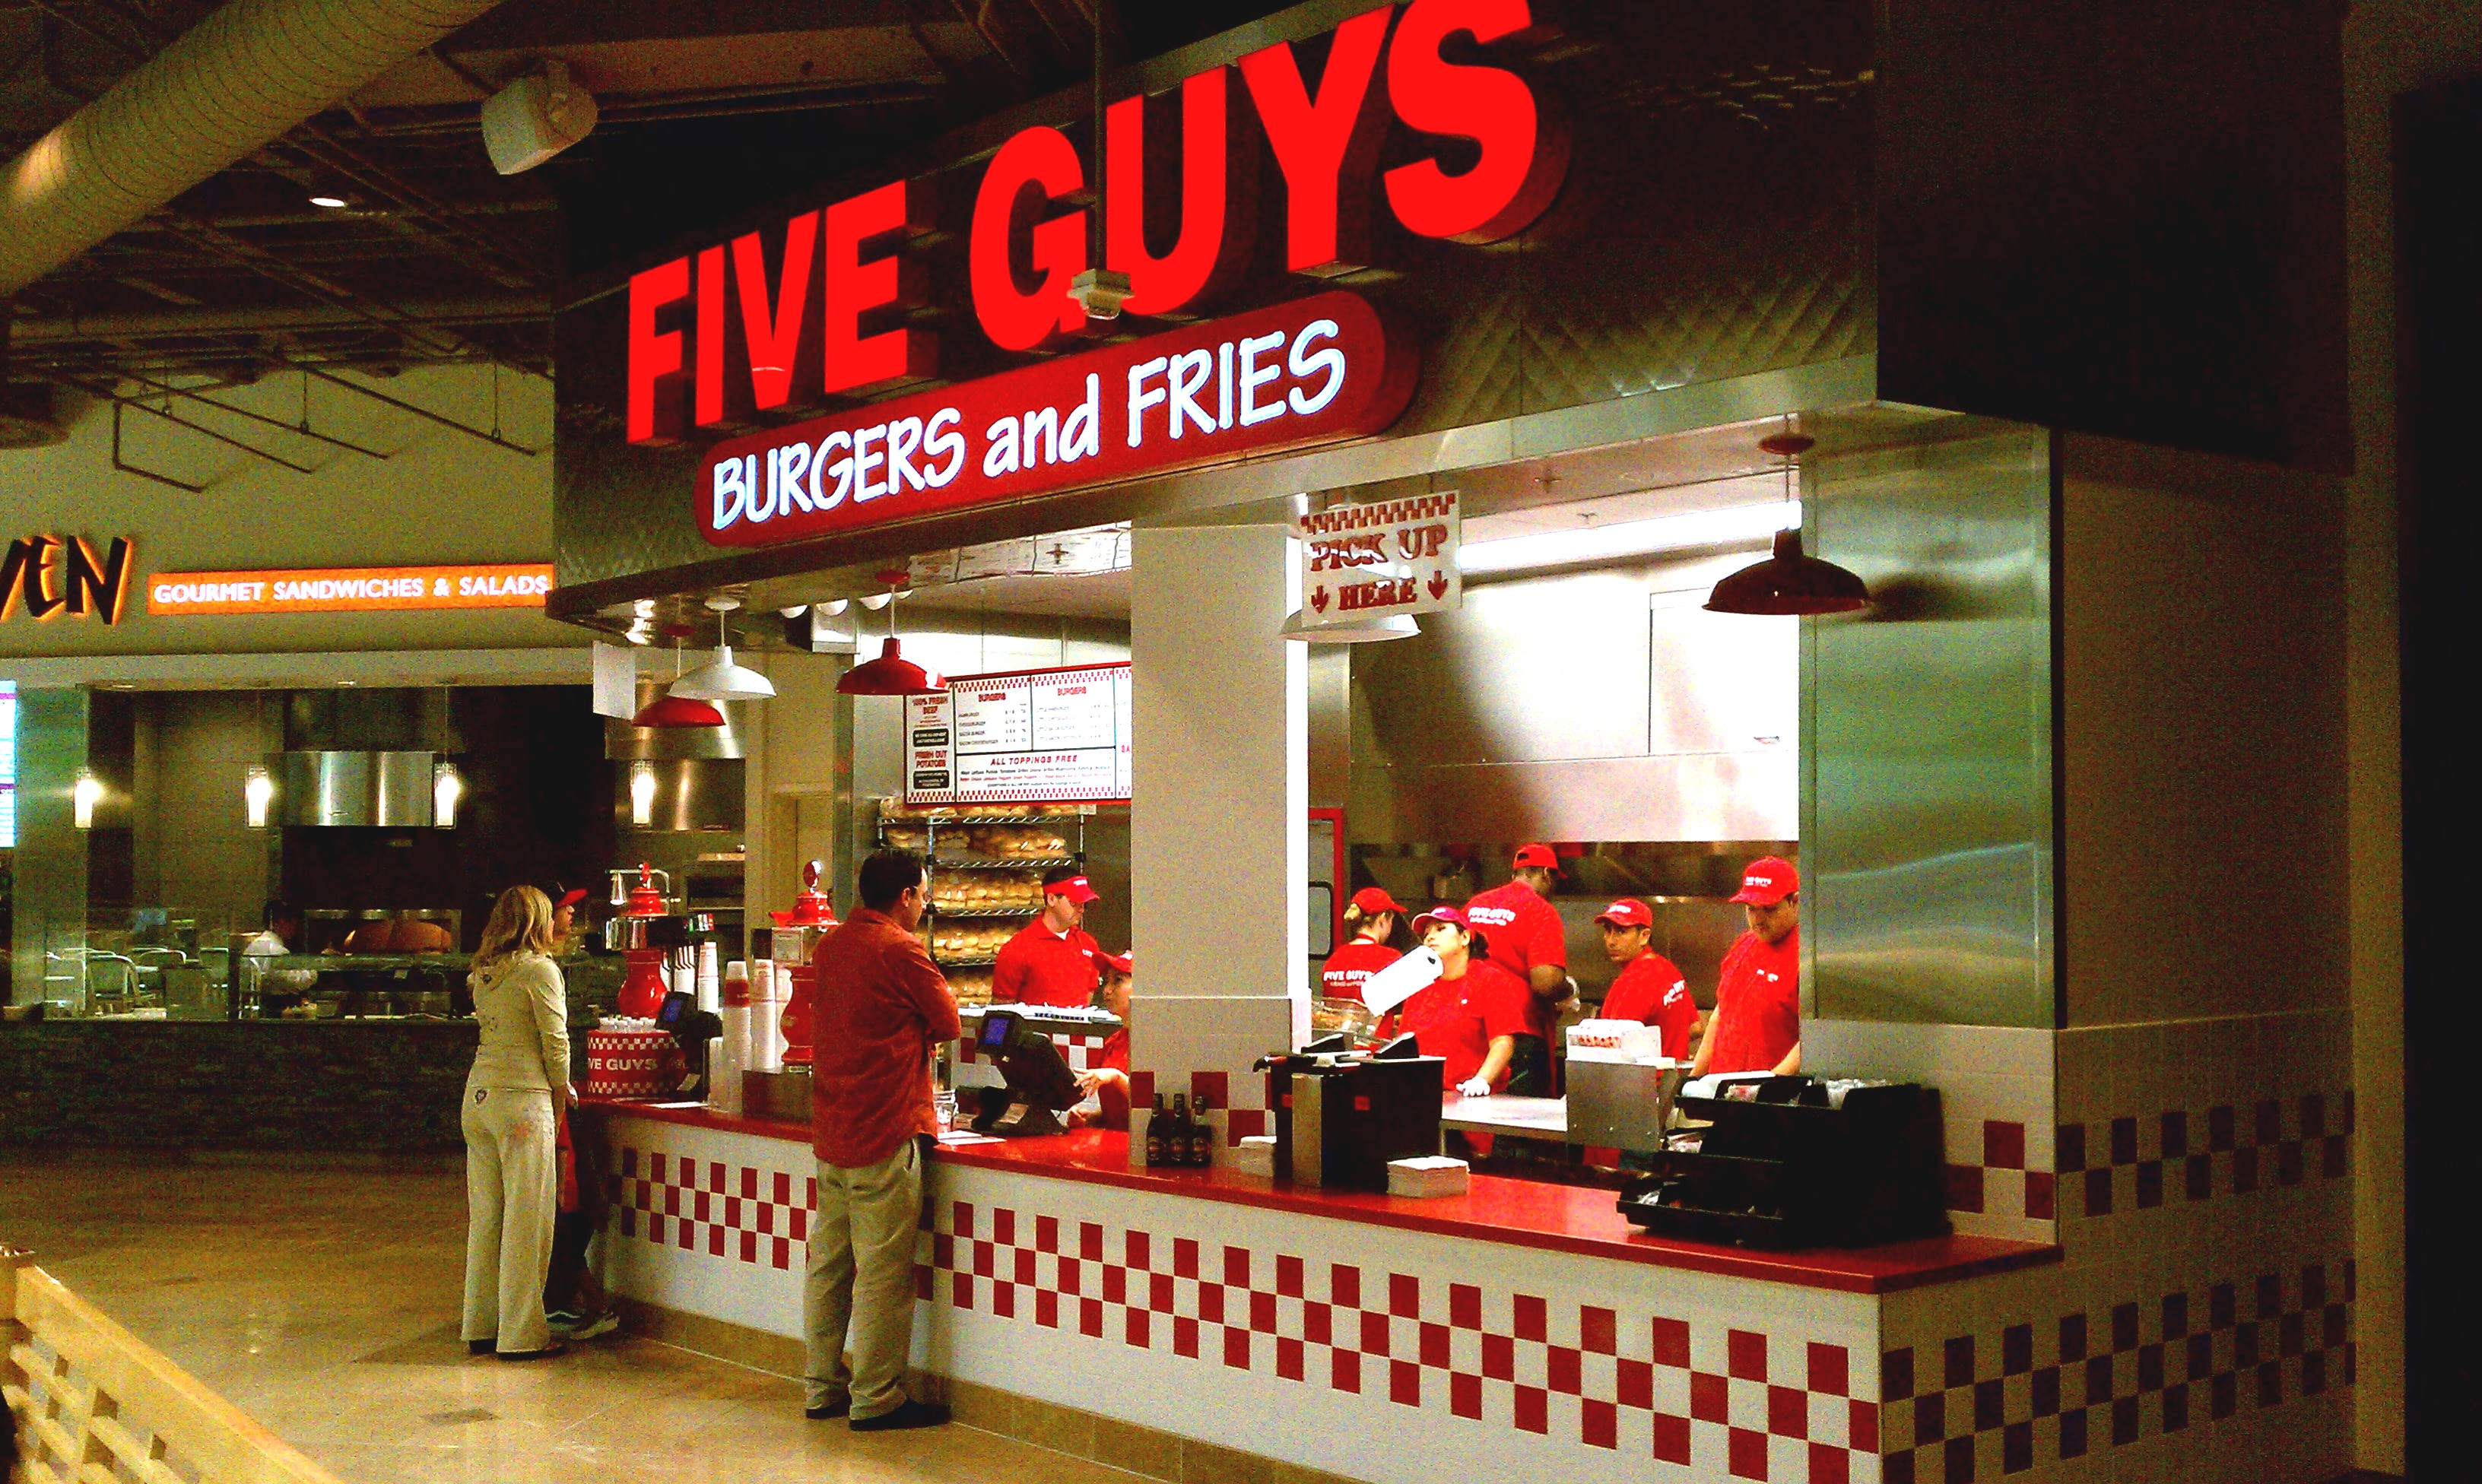 Five-guys-burgers-and-fries-fashion-island-july-2011